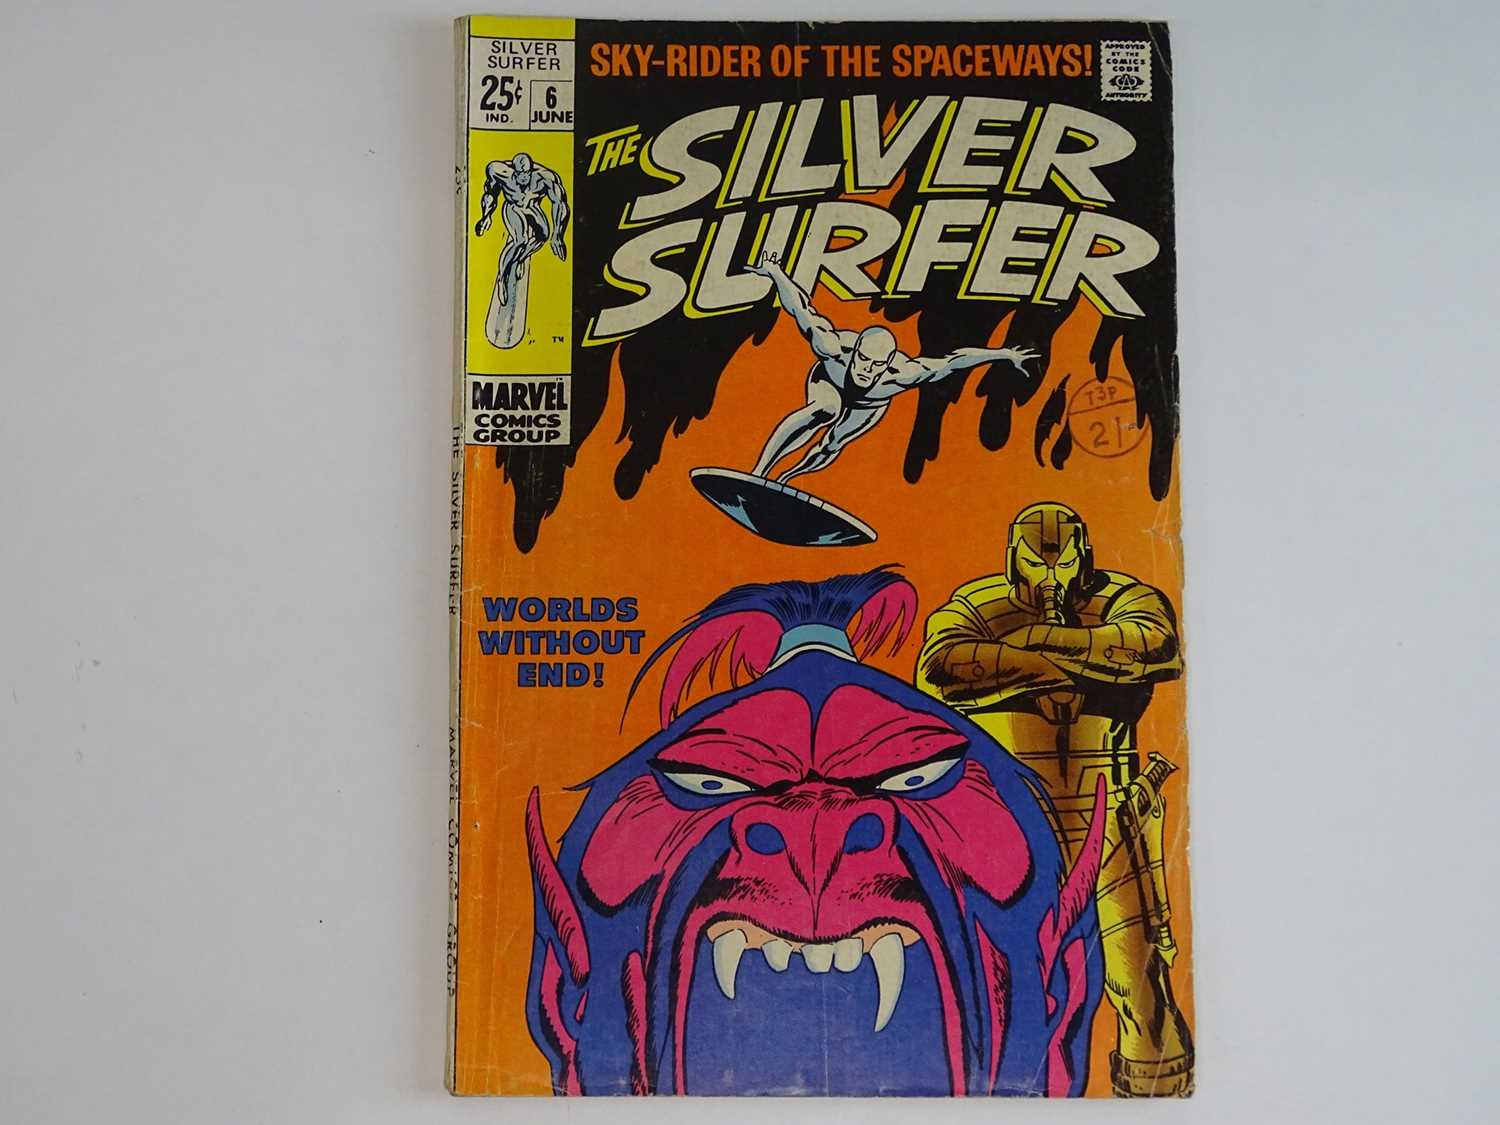 """SILVER SURFER #6 - (1969 - MARVEL - UK Cover Price) """"Tales of the Watcher"""" backup feature with Syd"""